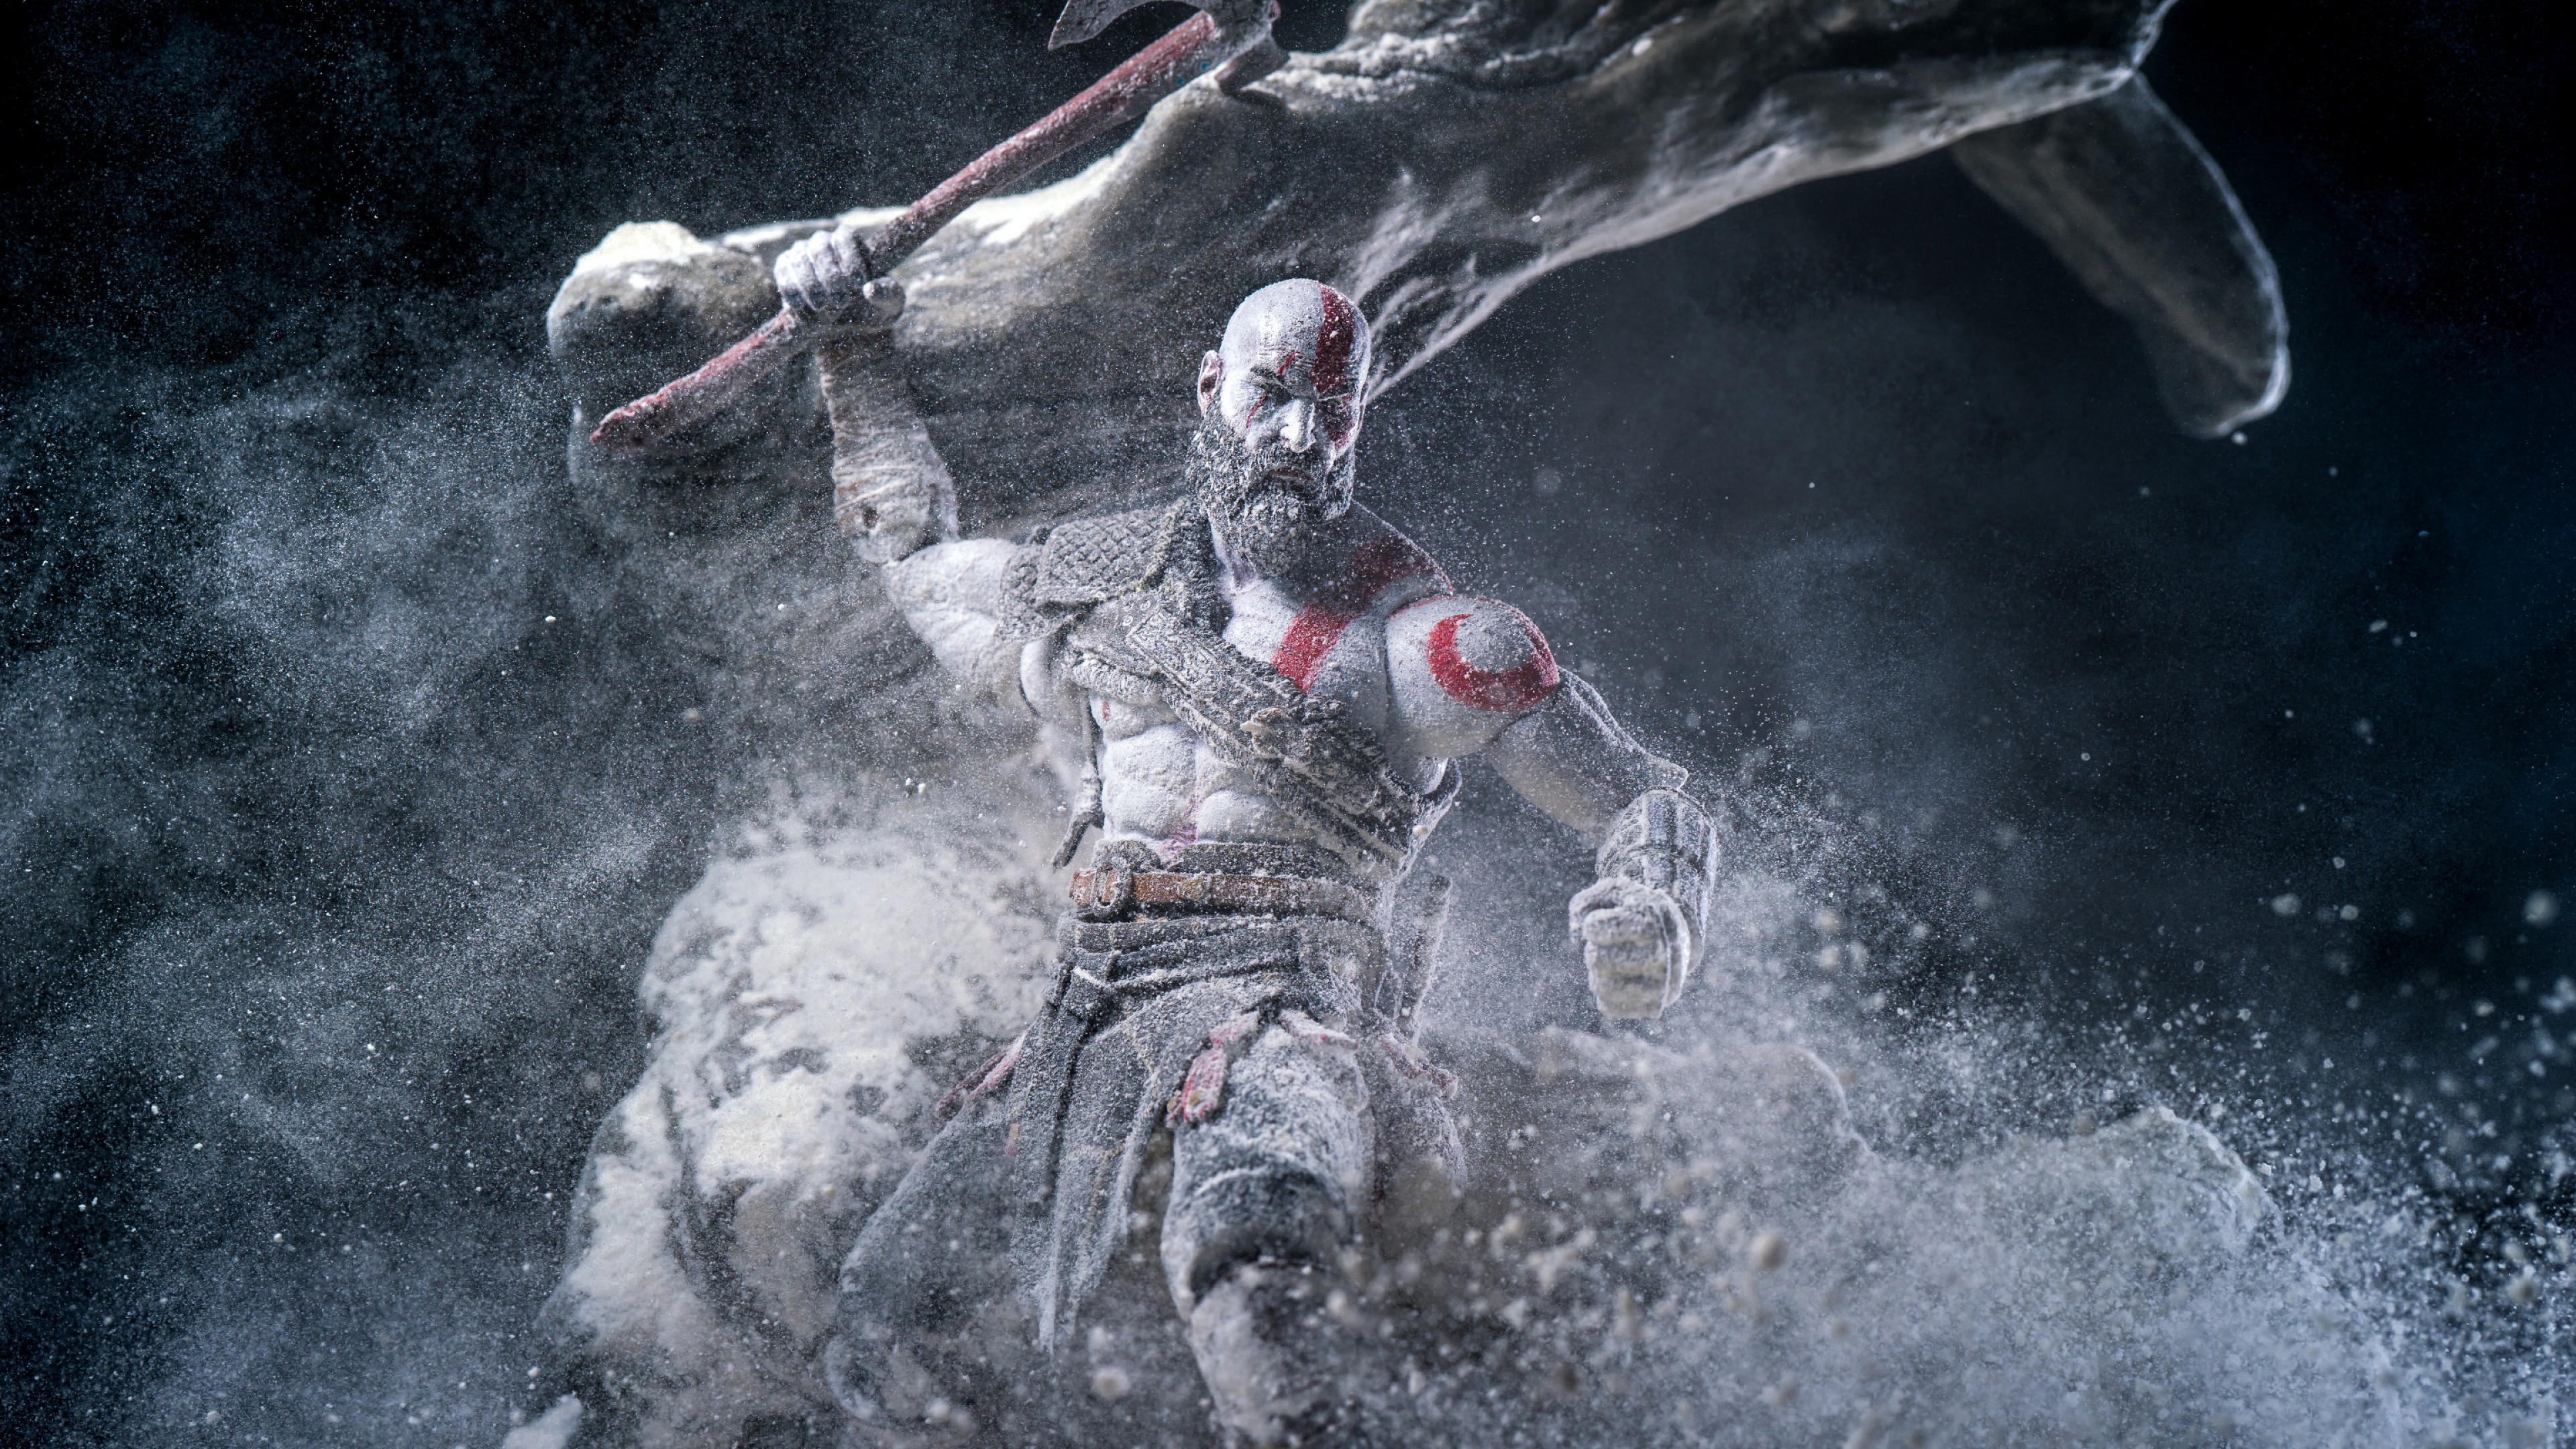 Wallpaper God Of War Anger Kratos Screenshot 4k Games 18046